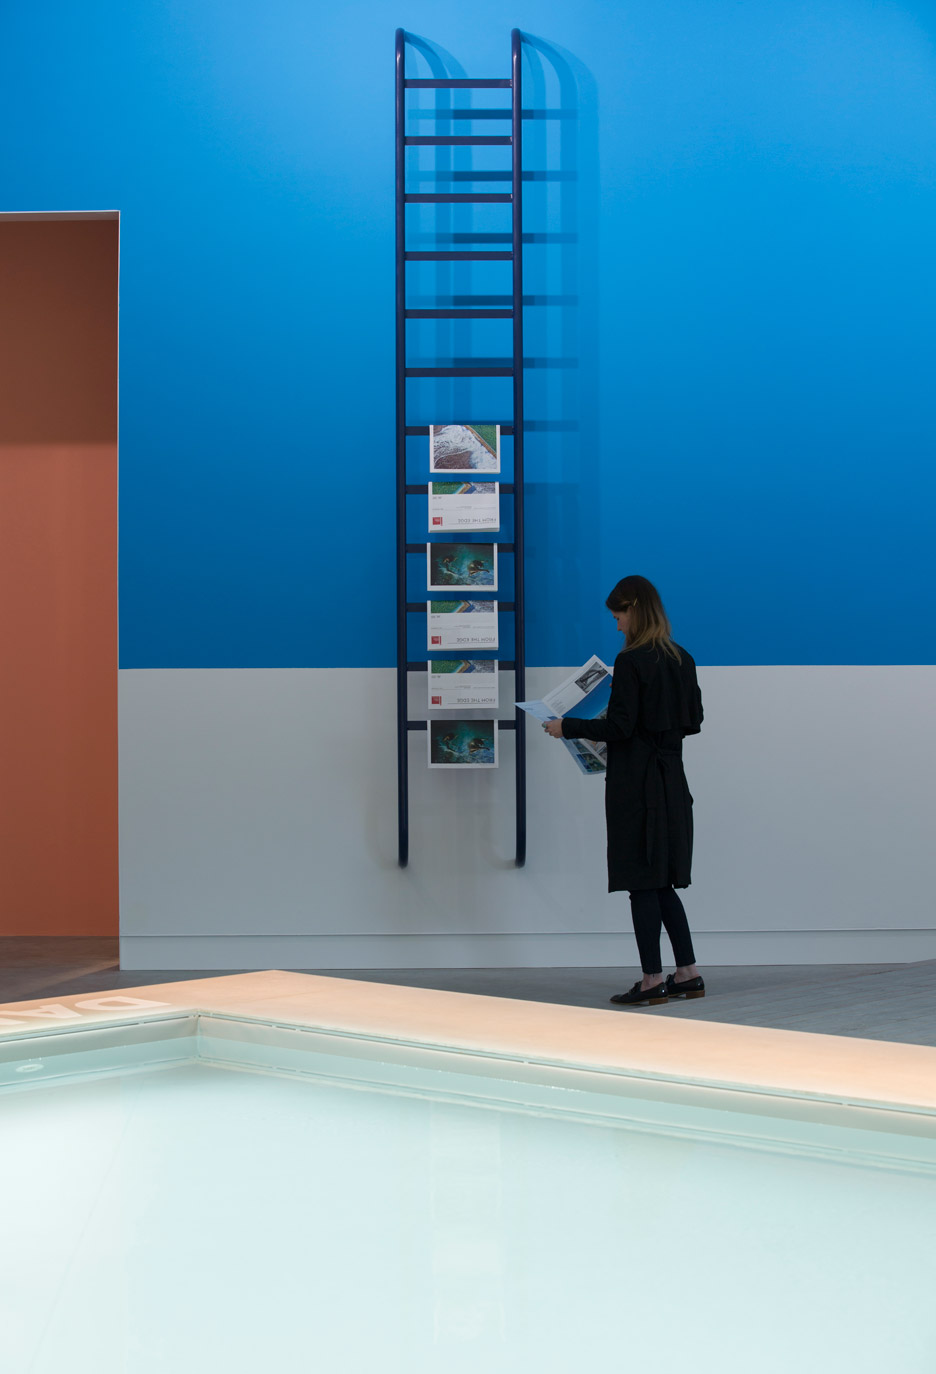 The Pool is the Australian exhibition curated by Aileen Sage Architects for the Venice Architecture Biennale 2016